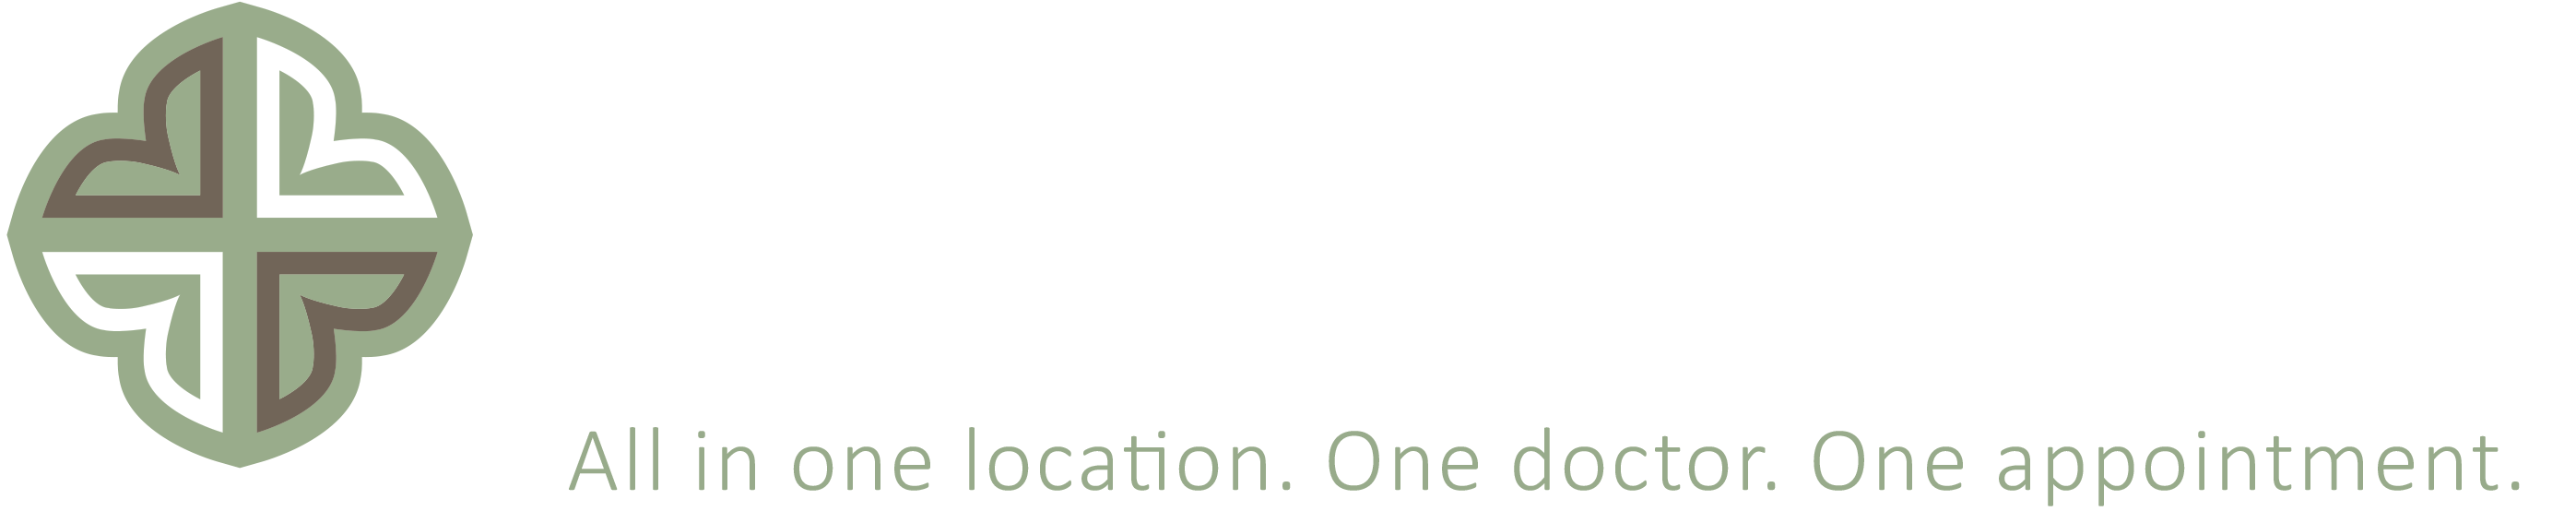 cosmetic dentistry dental implants and sedation dentistry in Fresno Clovis and Madera